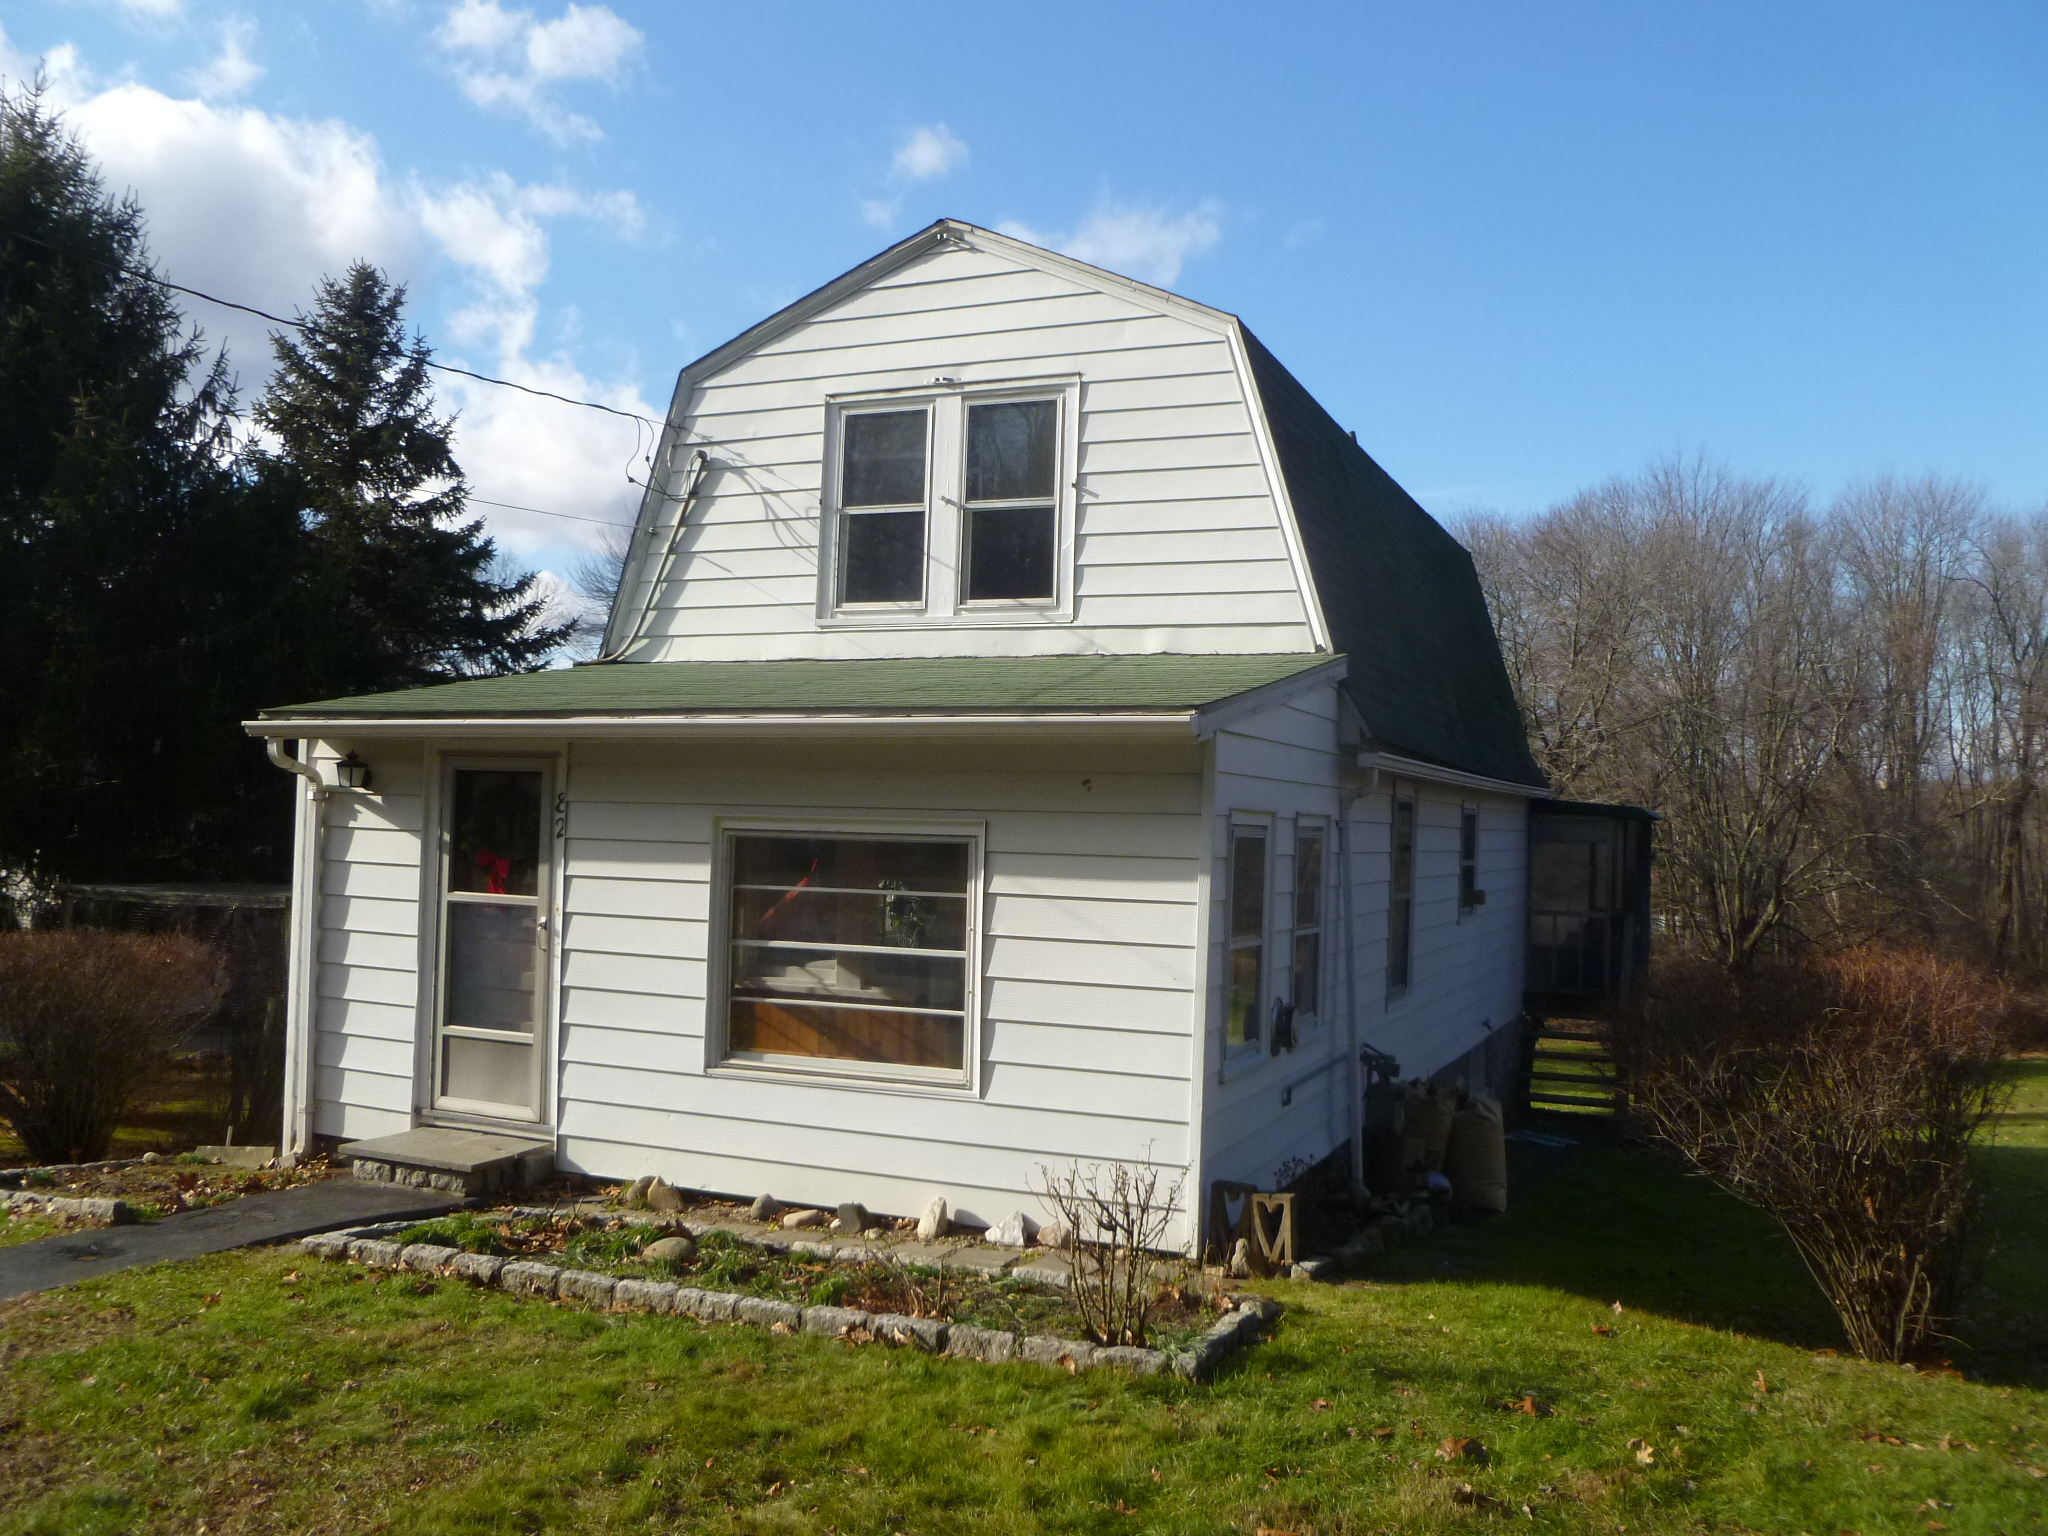 This house at 82 Beers Road, Easton, sold for $225,000.